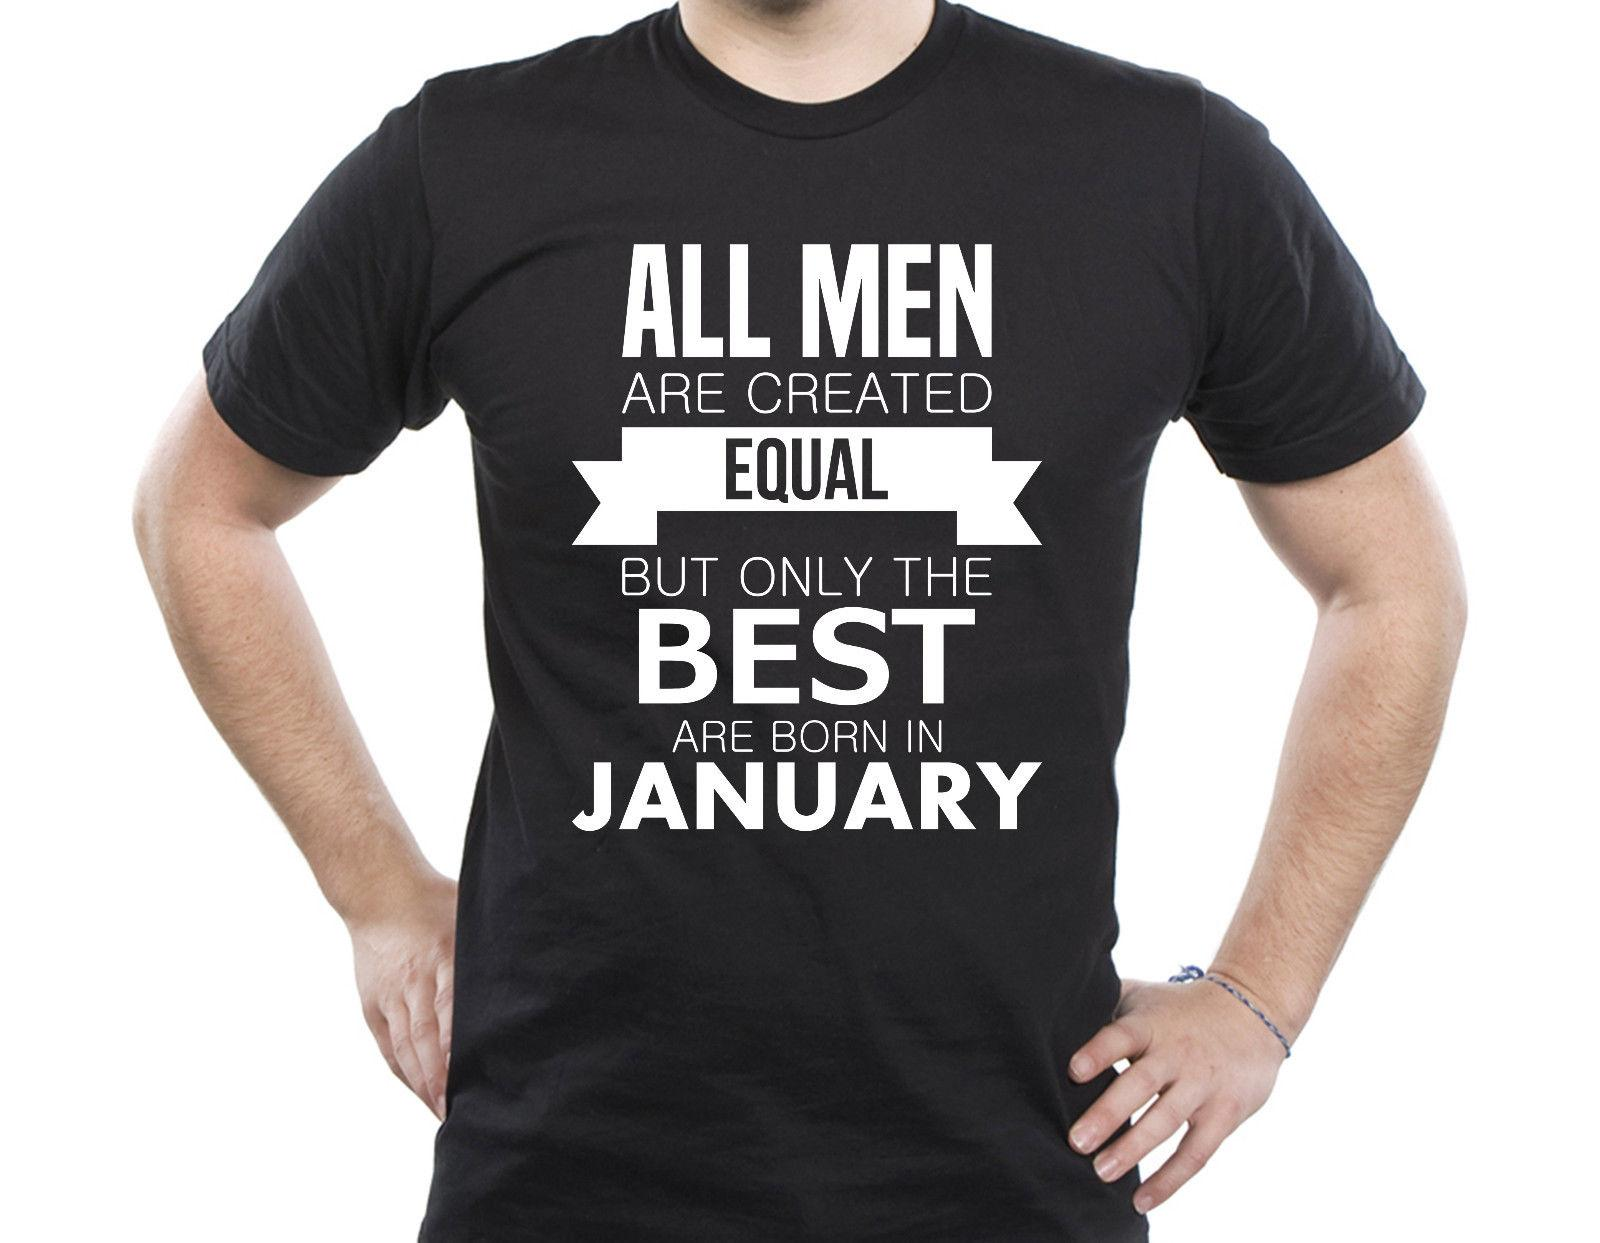 034ad4954a0 All Men Are Created Equal Only The Best Are Born In January Tshirt Tshirt  A380 Funny Unisex Tshirt Top Tee Shirt A Day Shop T Shirt Online From ...